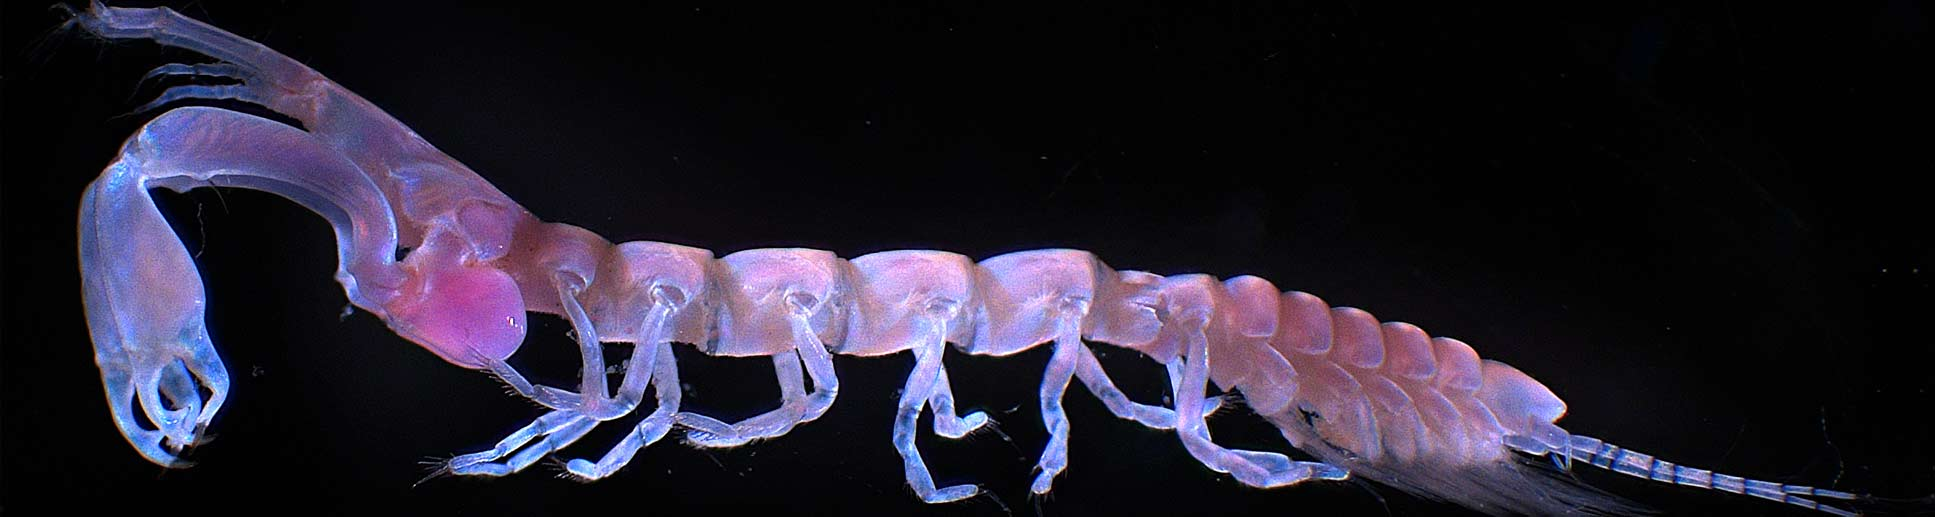 Image of am unknown, stunning marine crustacean